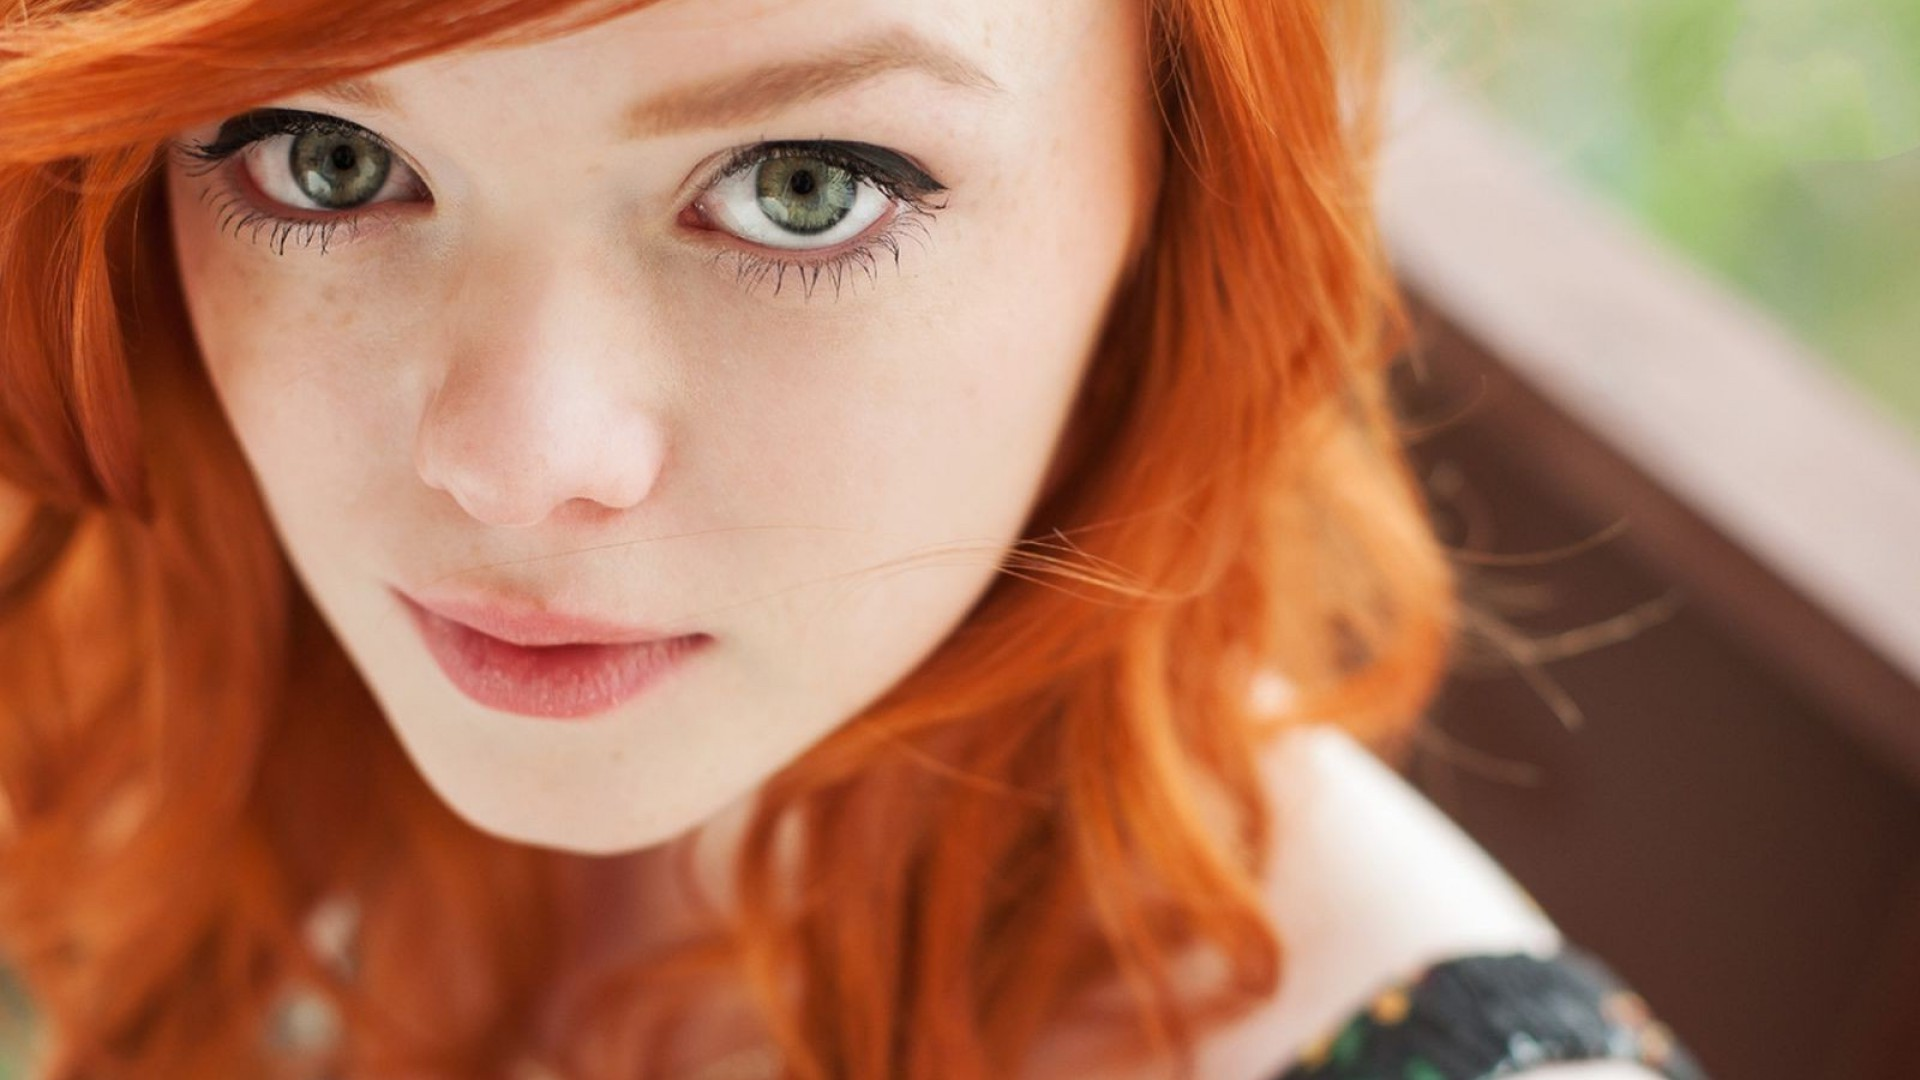 People 1920x1080 Lass Suicide tattoo redhead women model face pornstar Suicide Girls freckles green eyes pink lipstick looking at viewer